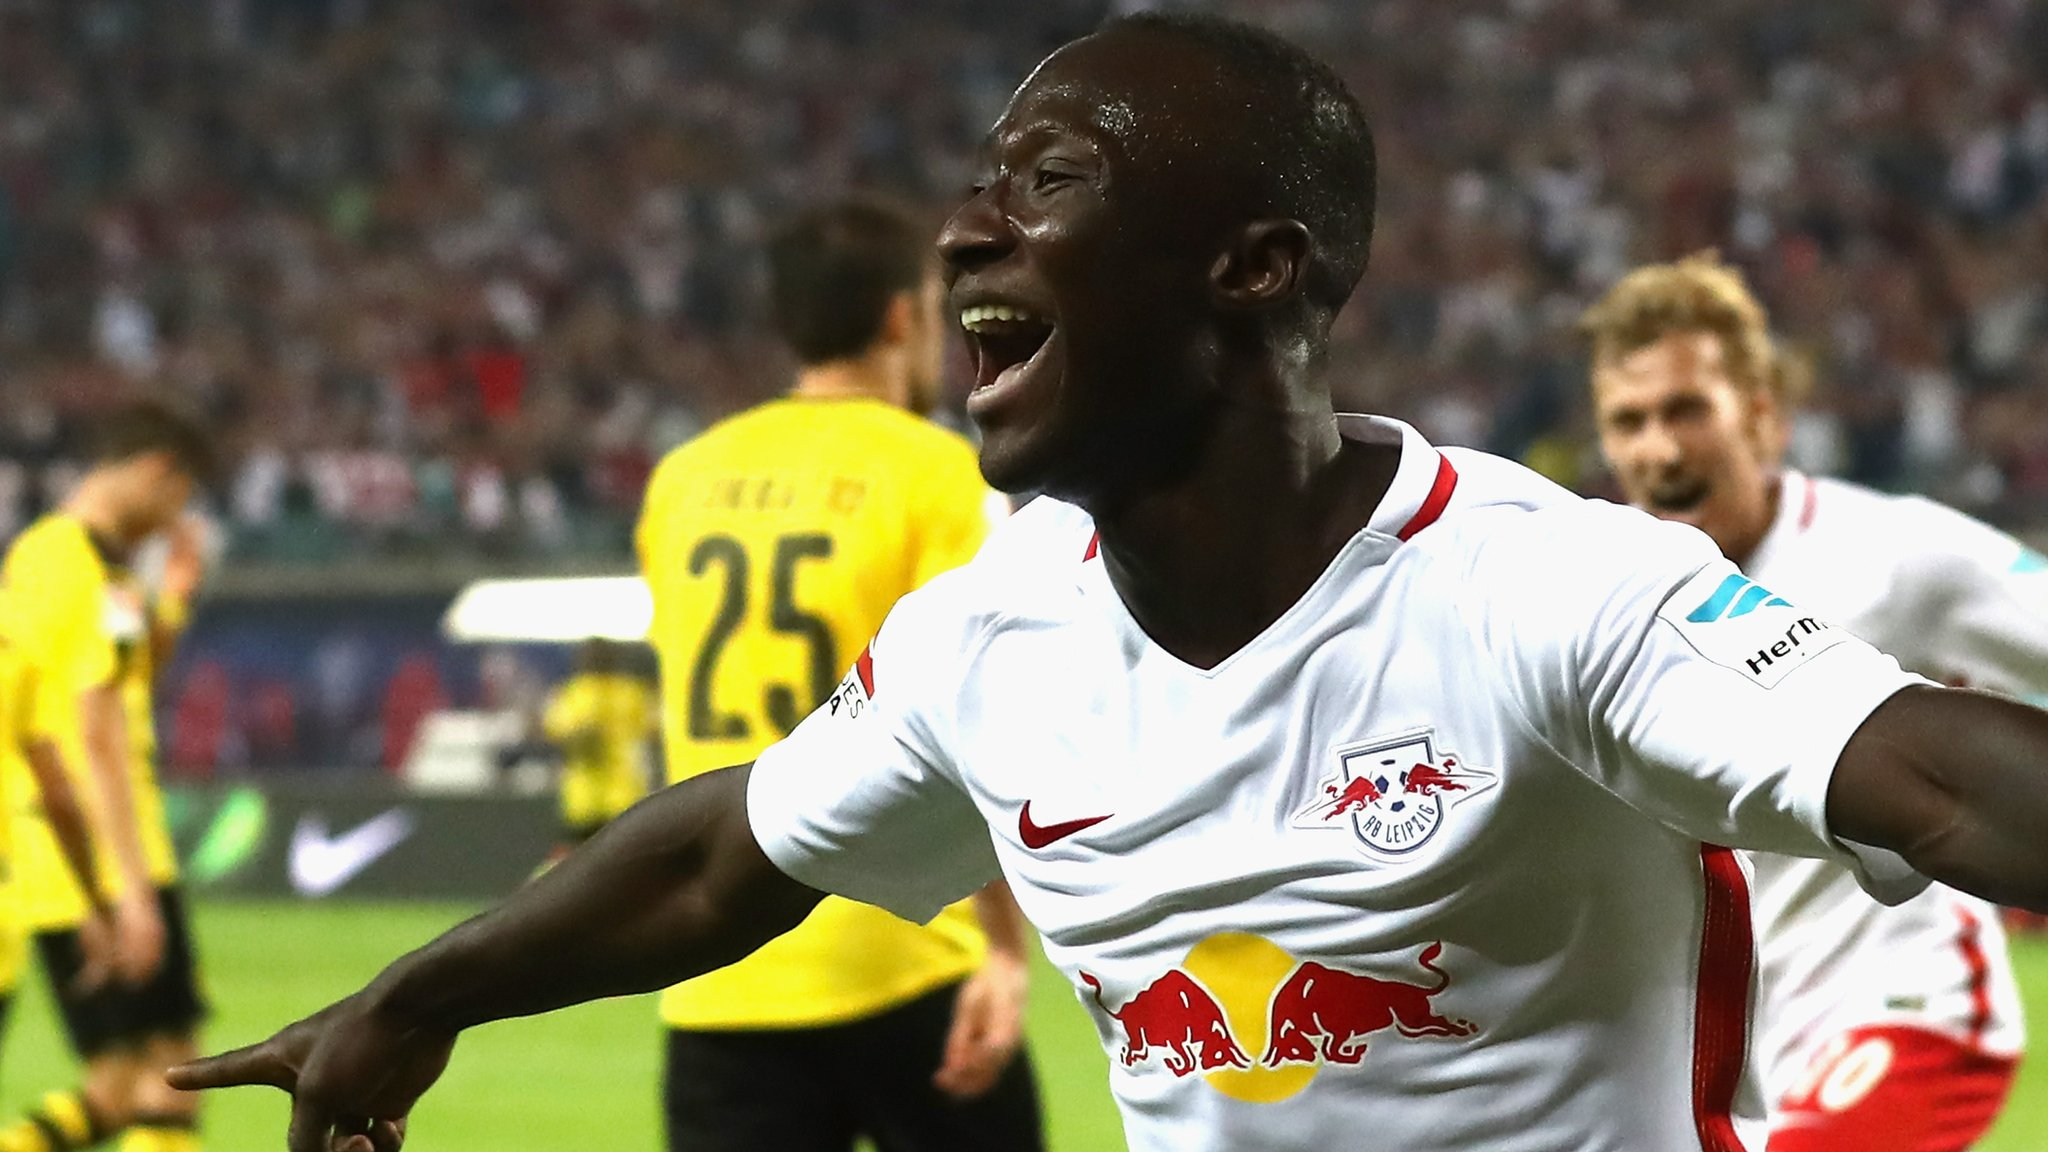 From the streets of Guinea to a record-breaker - Keita is living the dream